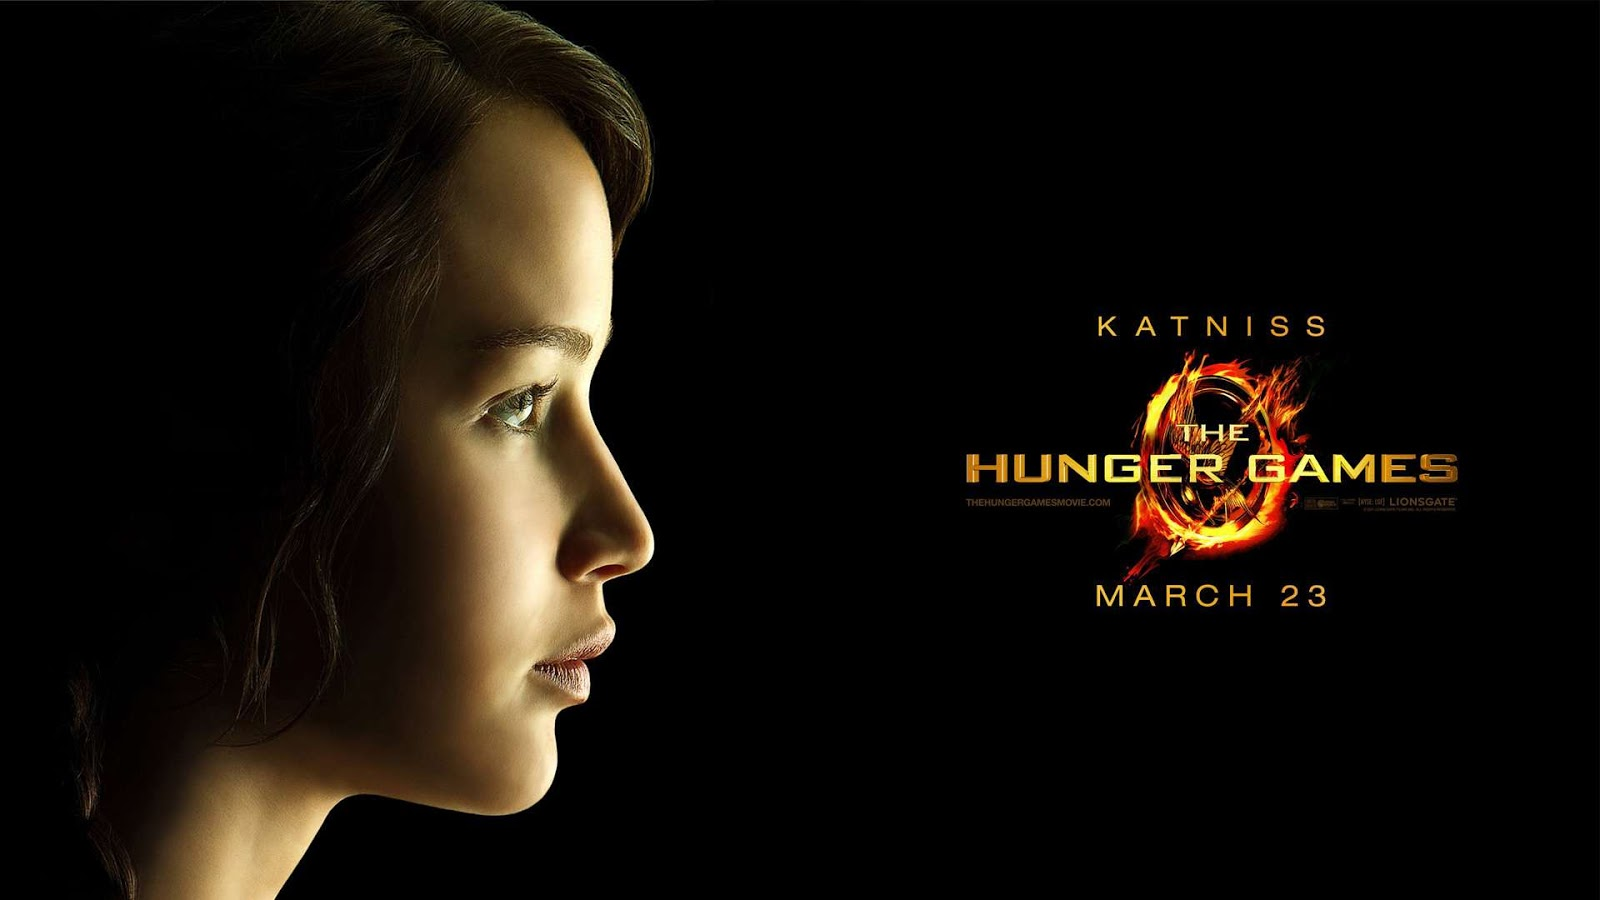 the hunger games katniss mystery wallpaper. Black Bedroom Furniture Sets. Home Design Ideas